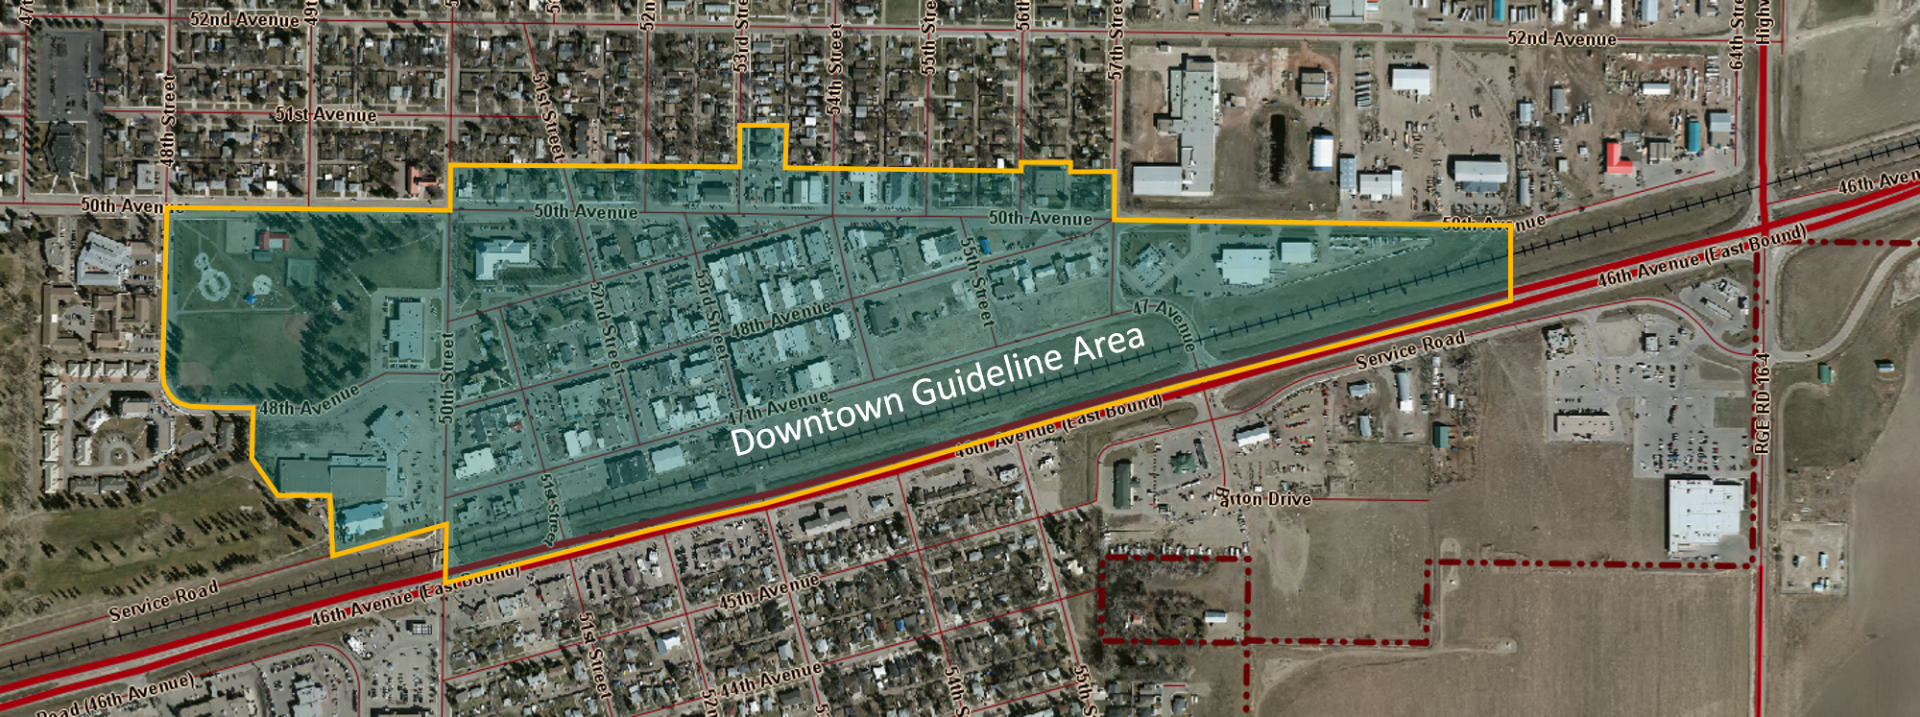 Downtown Guideline Area